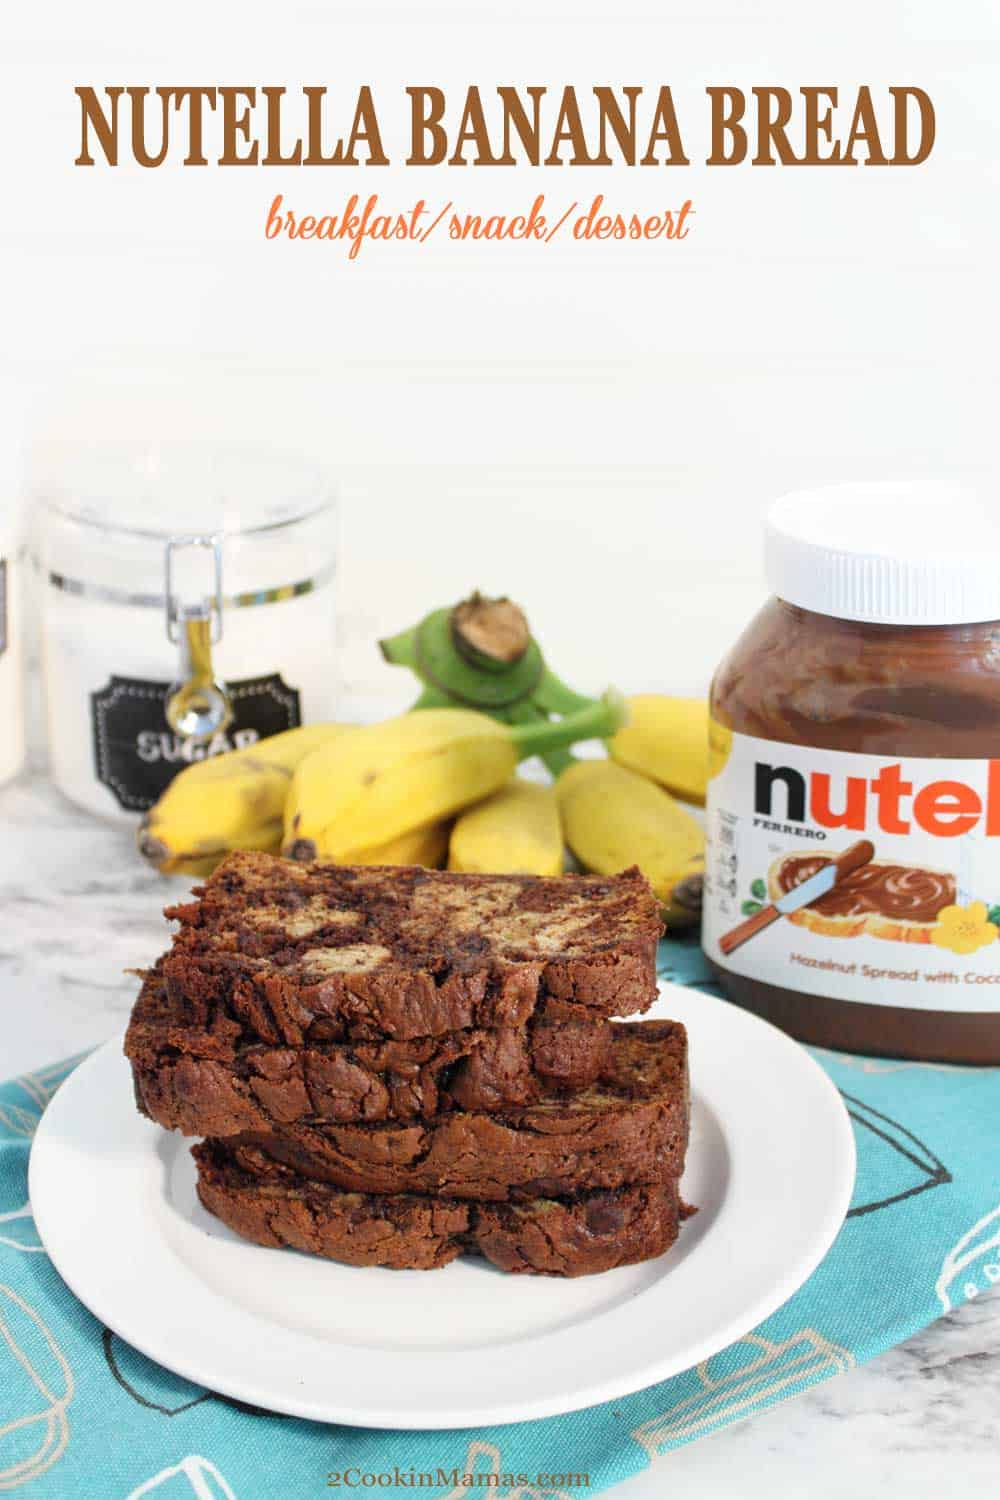 Nutella Banana Bread tall | 2 Cookin Mamas A sweet & delicious banana bread with a surprise inside - Nutella! This Nutella Banana Bread has all the moist and delicious taste of a banana bread with loads of everyone's favorite spread swirled throughout. Serve it as a special breakfast treat, a snack or top it with a chocolate glaze for a fabulous dessert.#bananabread #quickbread #bananas #nutella #breakfast #dessert #snack #recipe